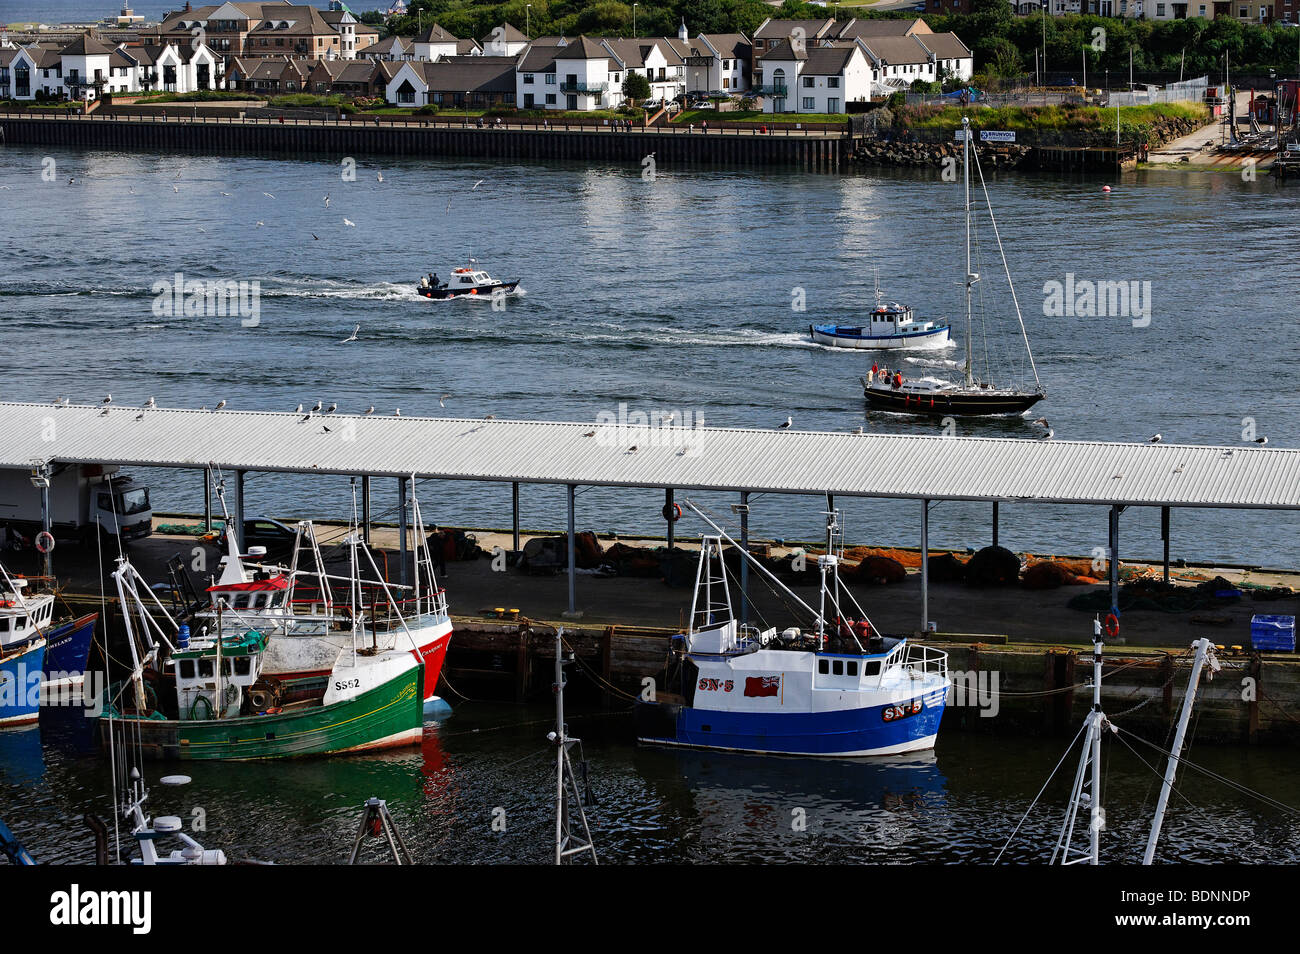 View of River Tyne and the harbour at Fish Quay, South Shields - Stock Image